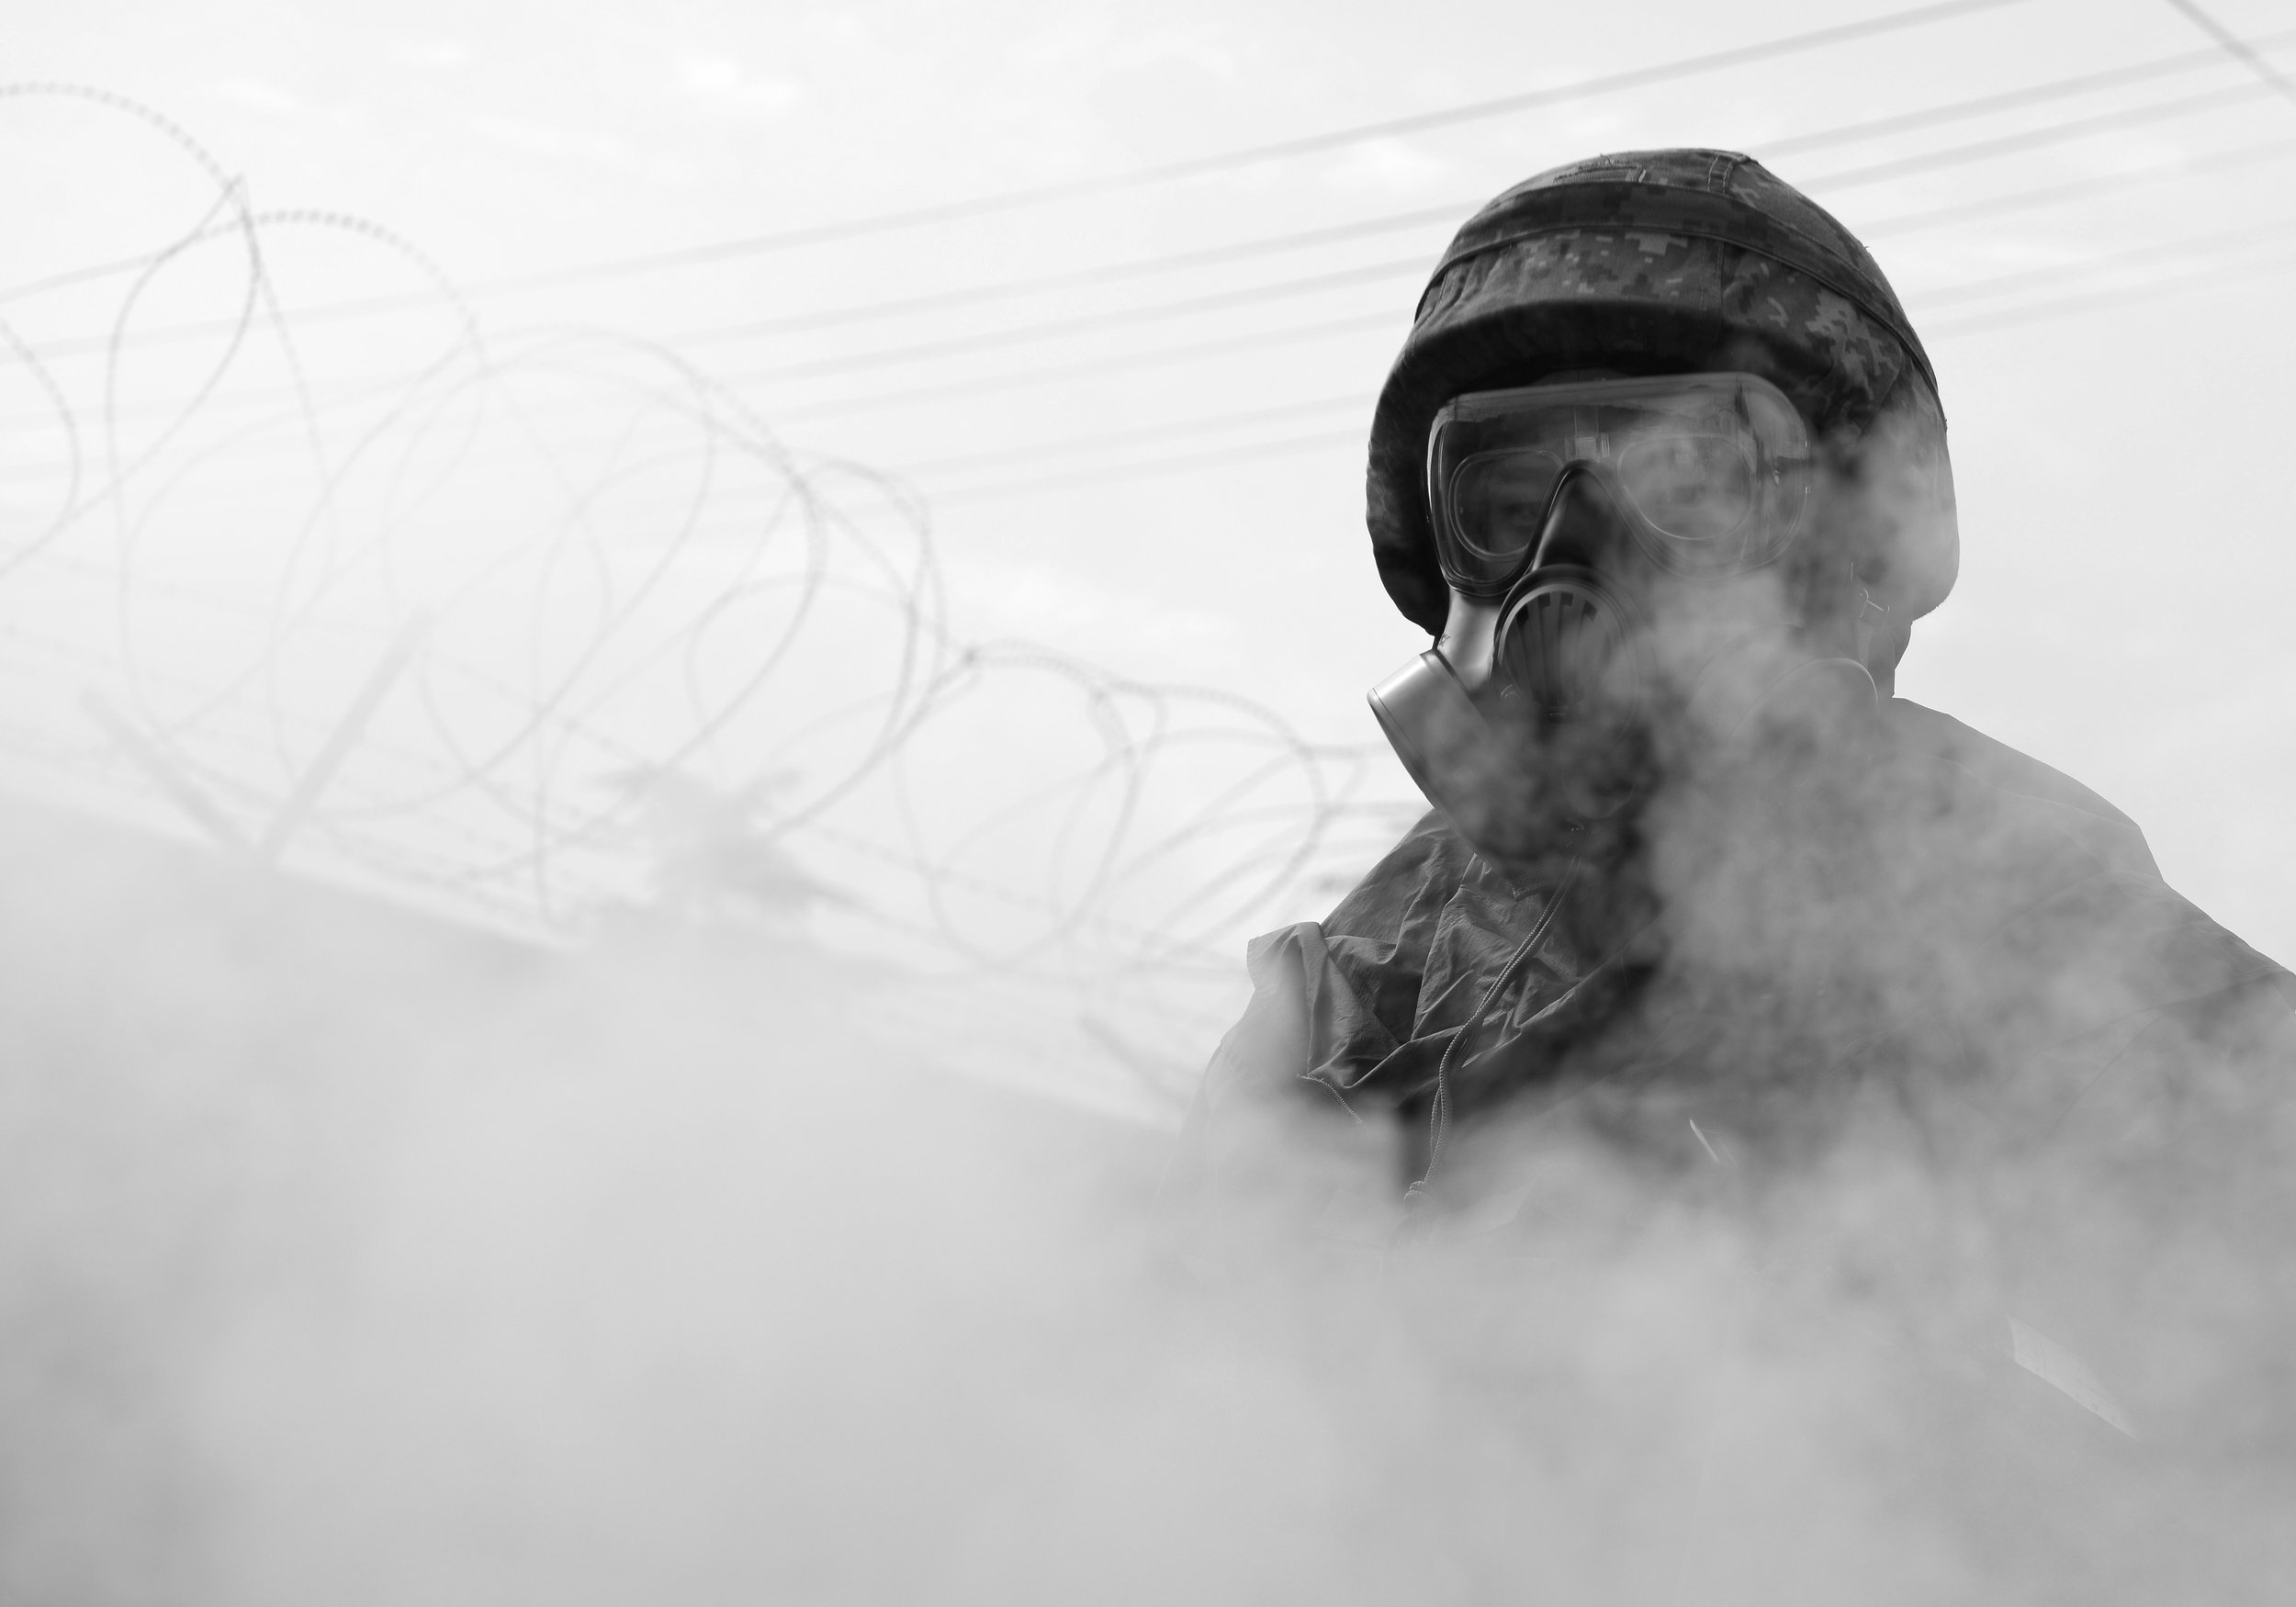 A Republic of Korea Airman assists with decontamination operations during the ROK/U.S. Combined Chemical, Biological, Radiological, and Nuclear Field Training Exercise at Daegu Air Base, South Korea, April 20, 2017. (Staff Sgt. Alex Echols)